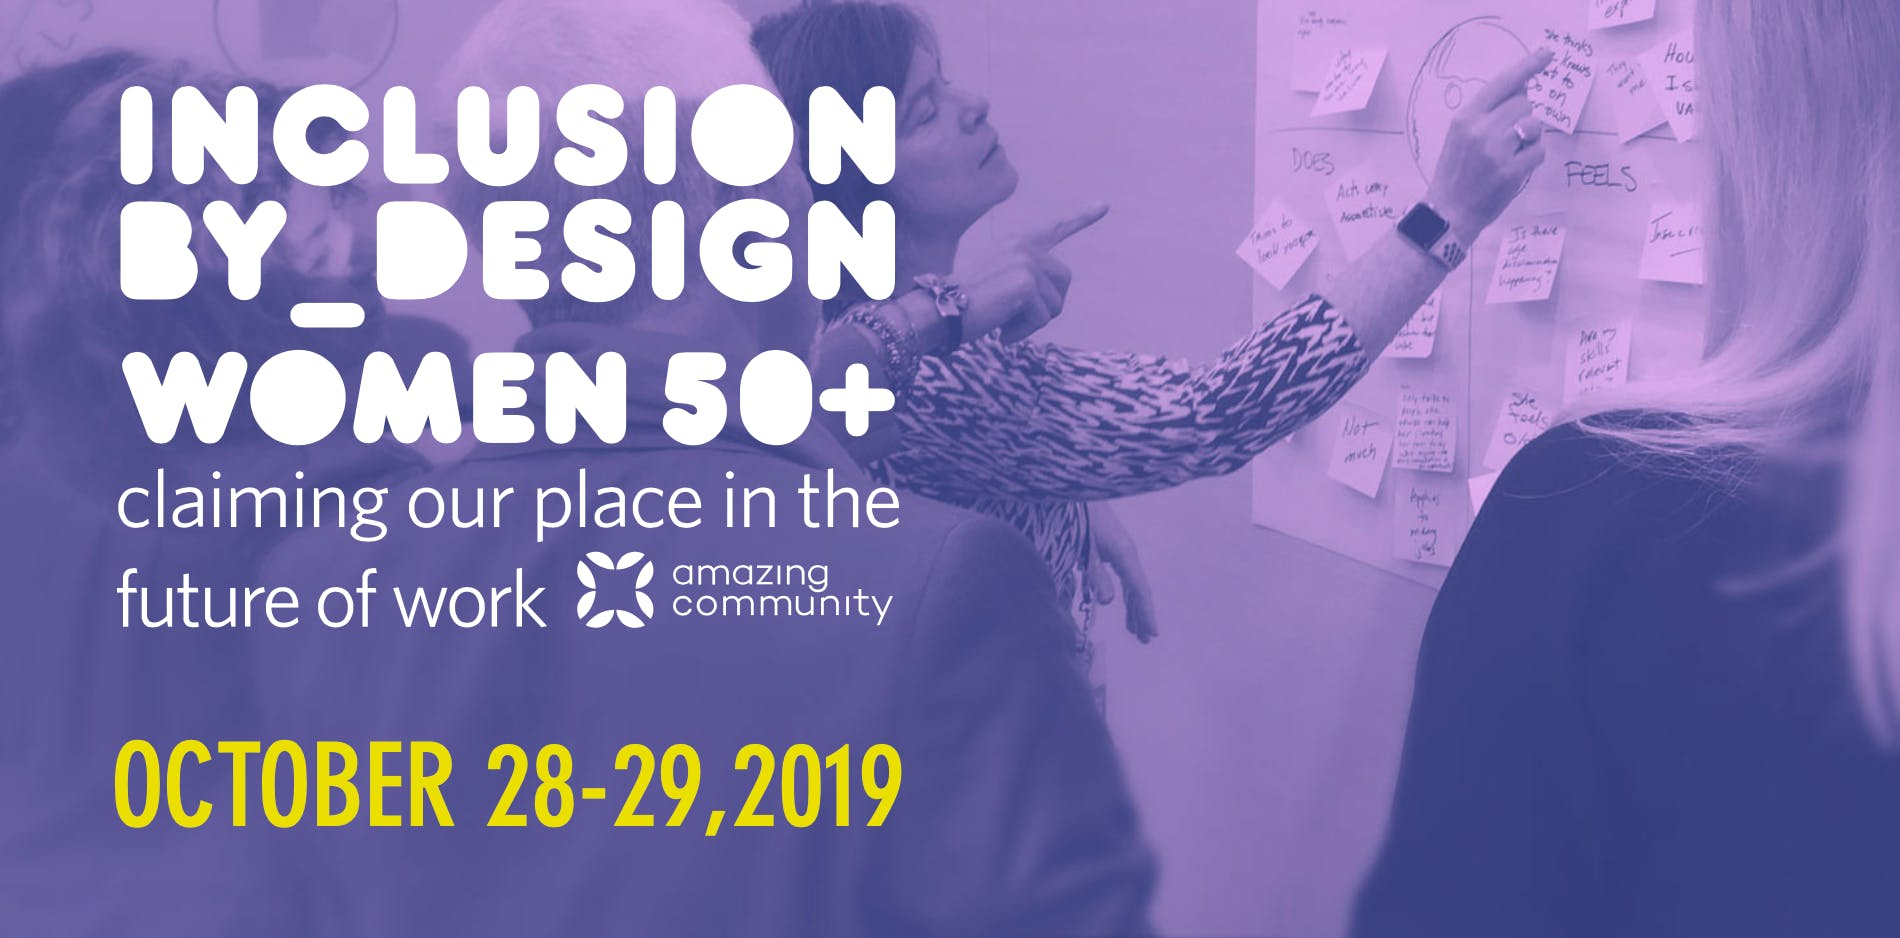 INCLUSION BY DESIGN 2019 Women 50 Claiming Our Place in the Future of Work